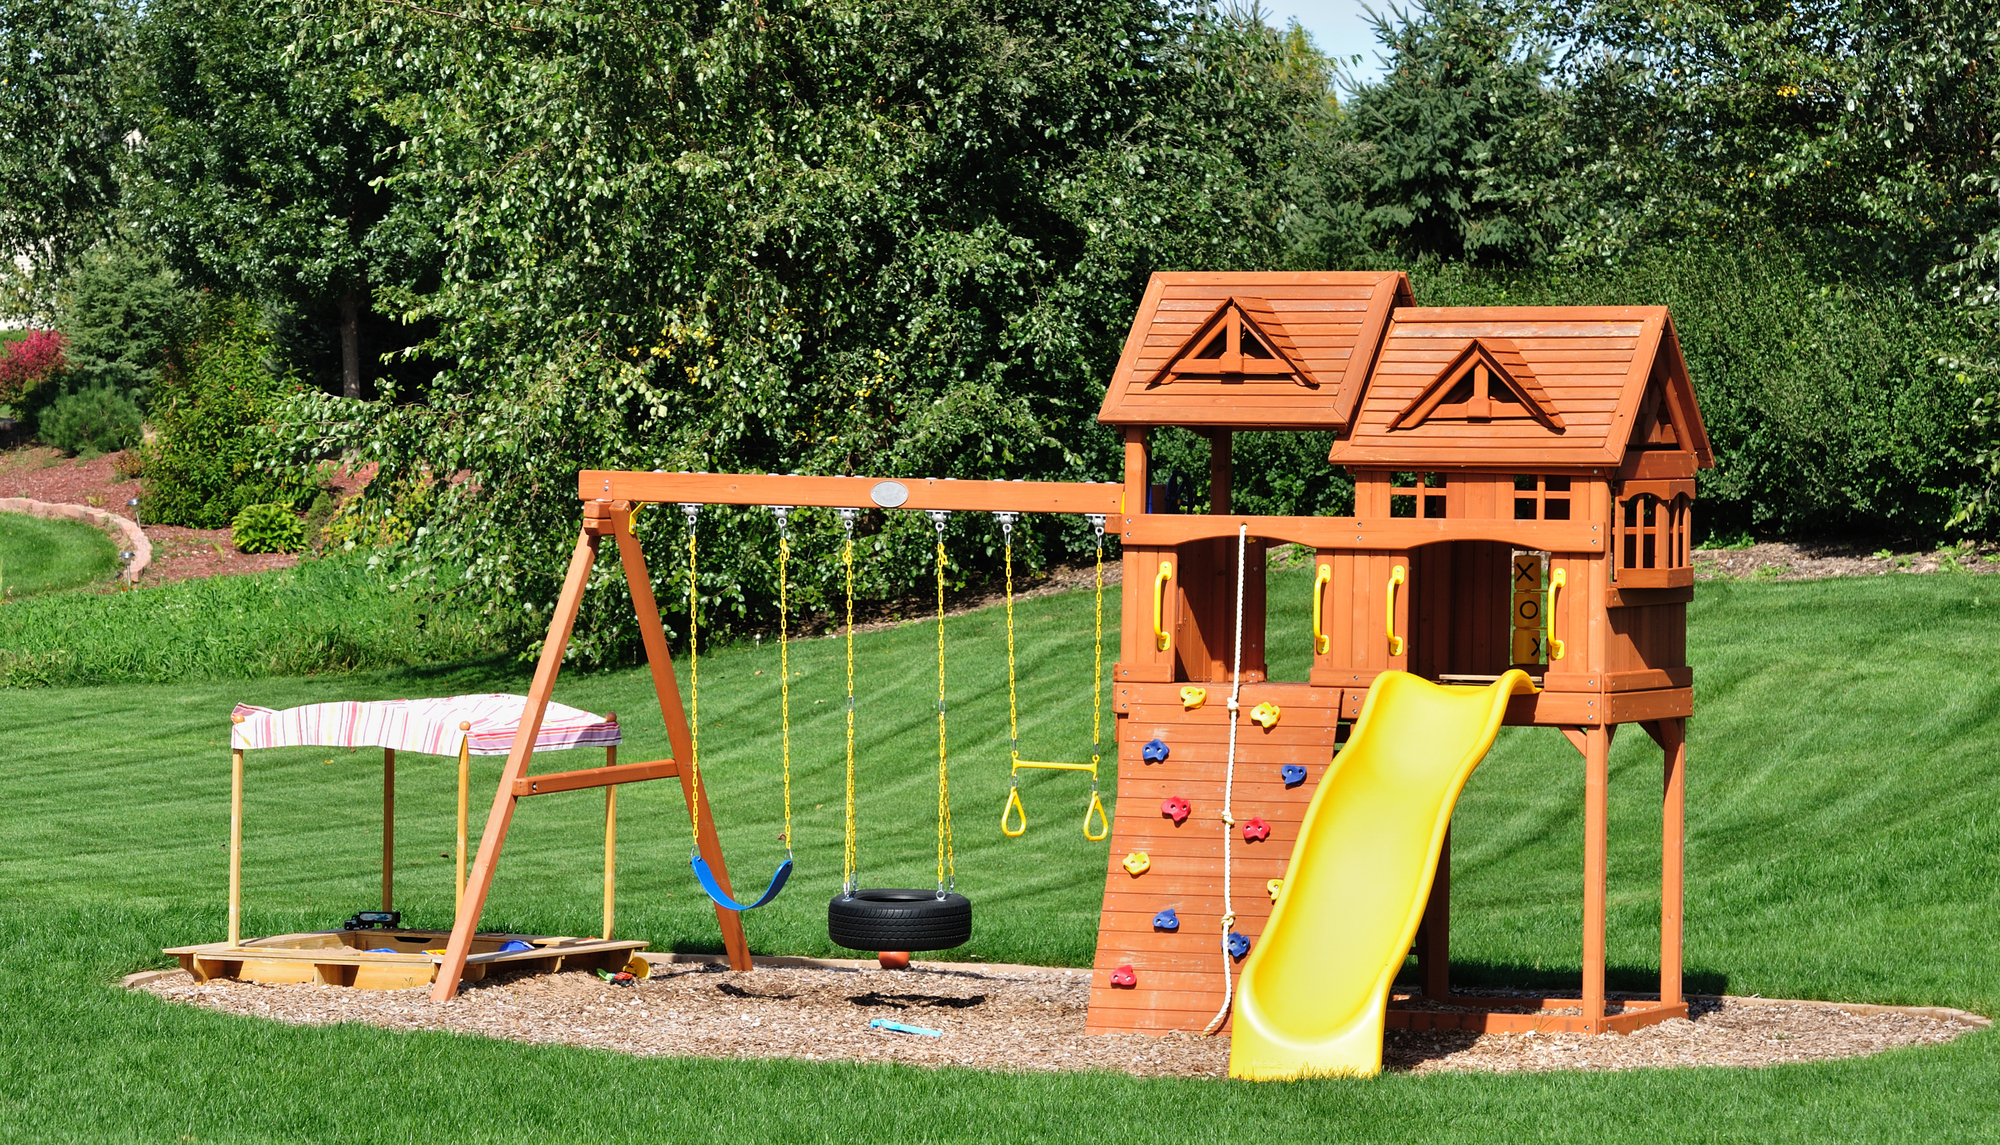 play space for kids is important during COVID